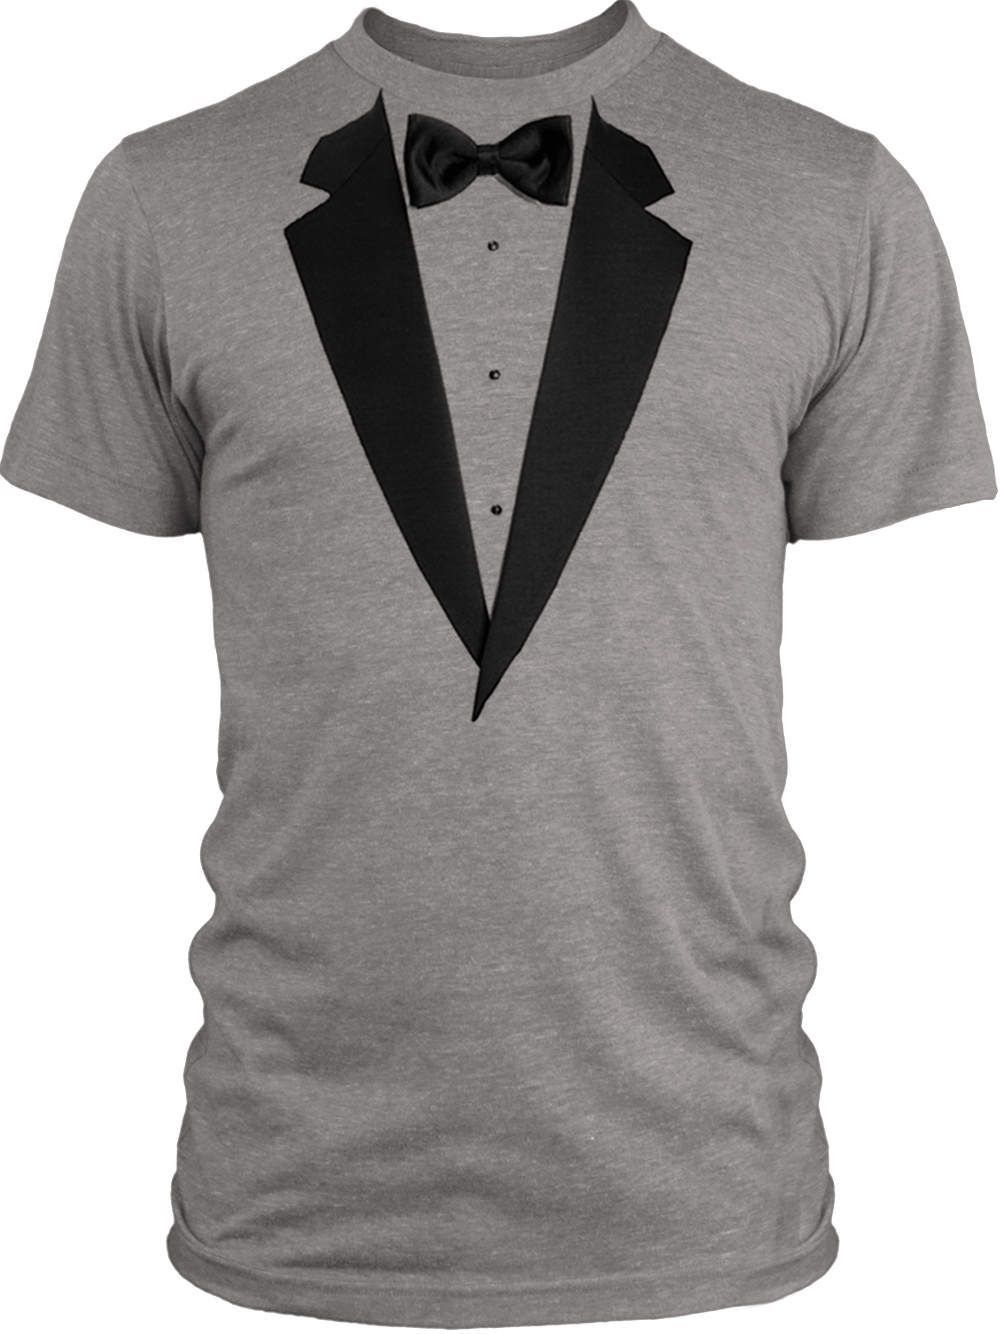 Big Texas Realistic Tuxedo (Black) Vintage Tri Blend T Shirt